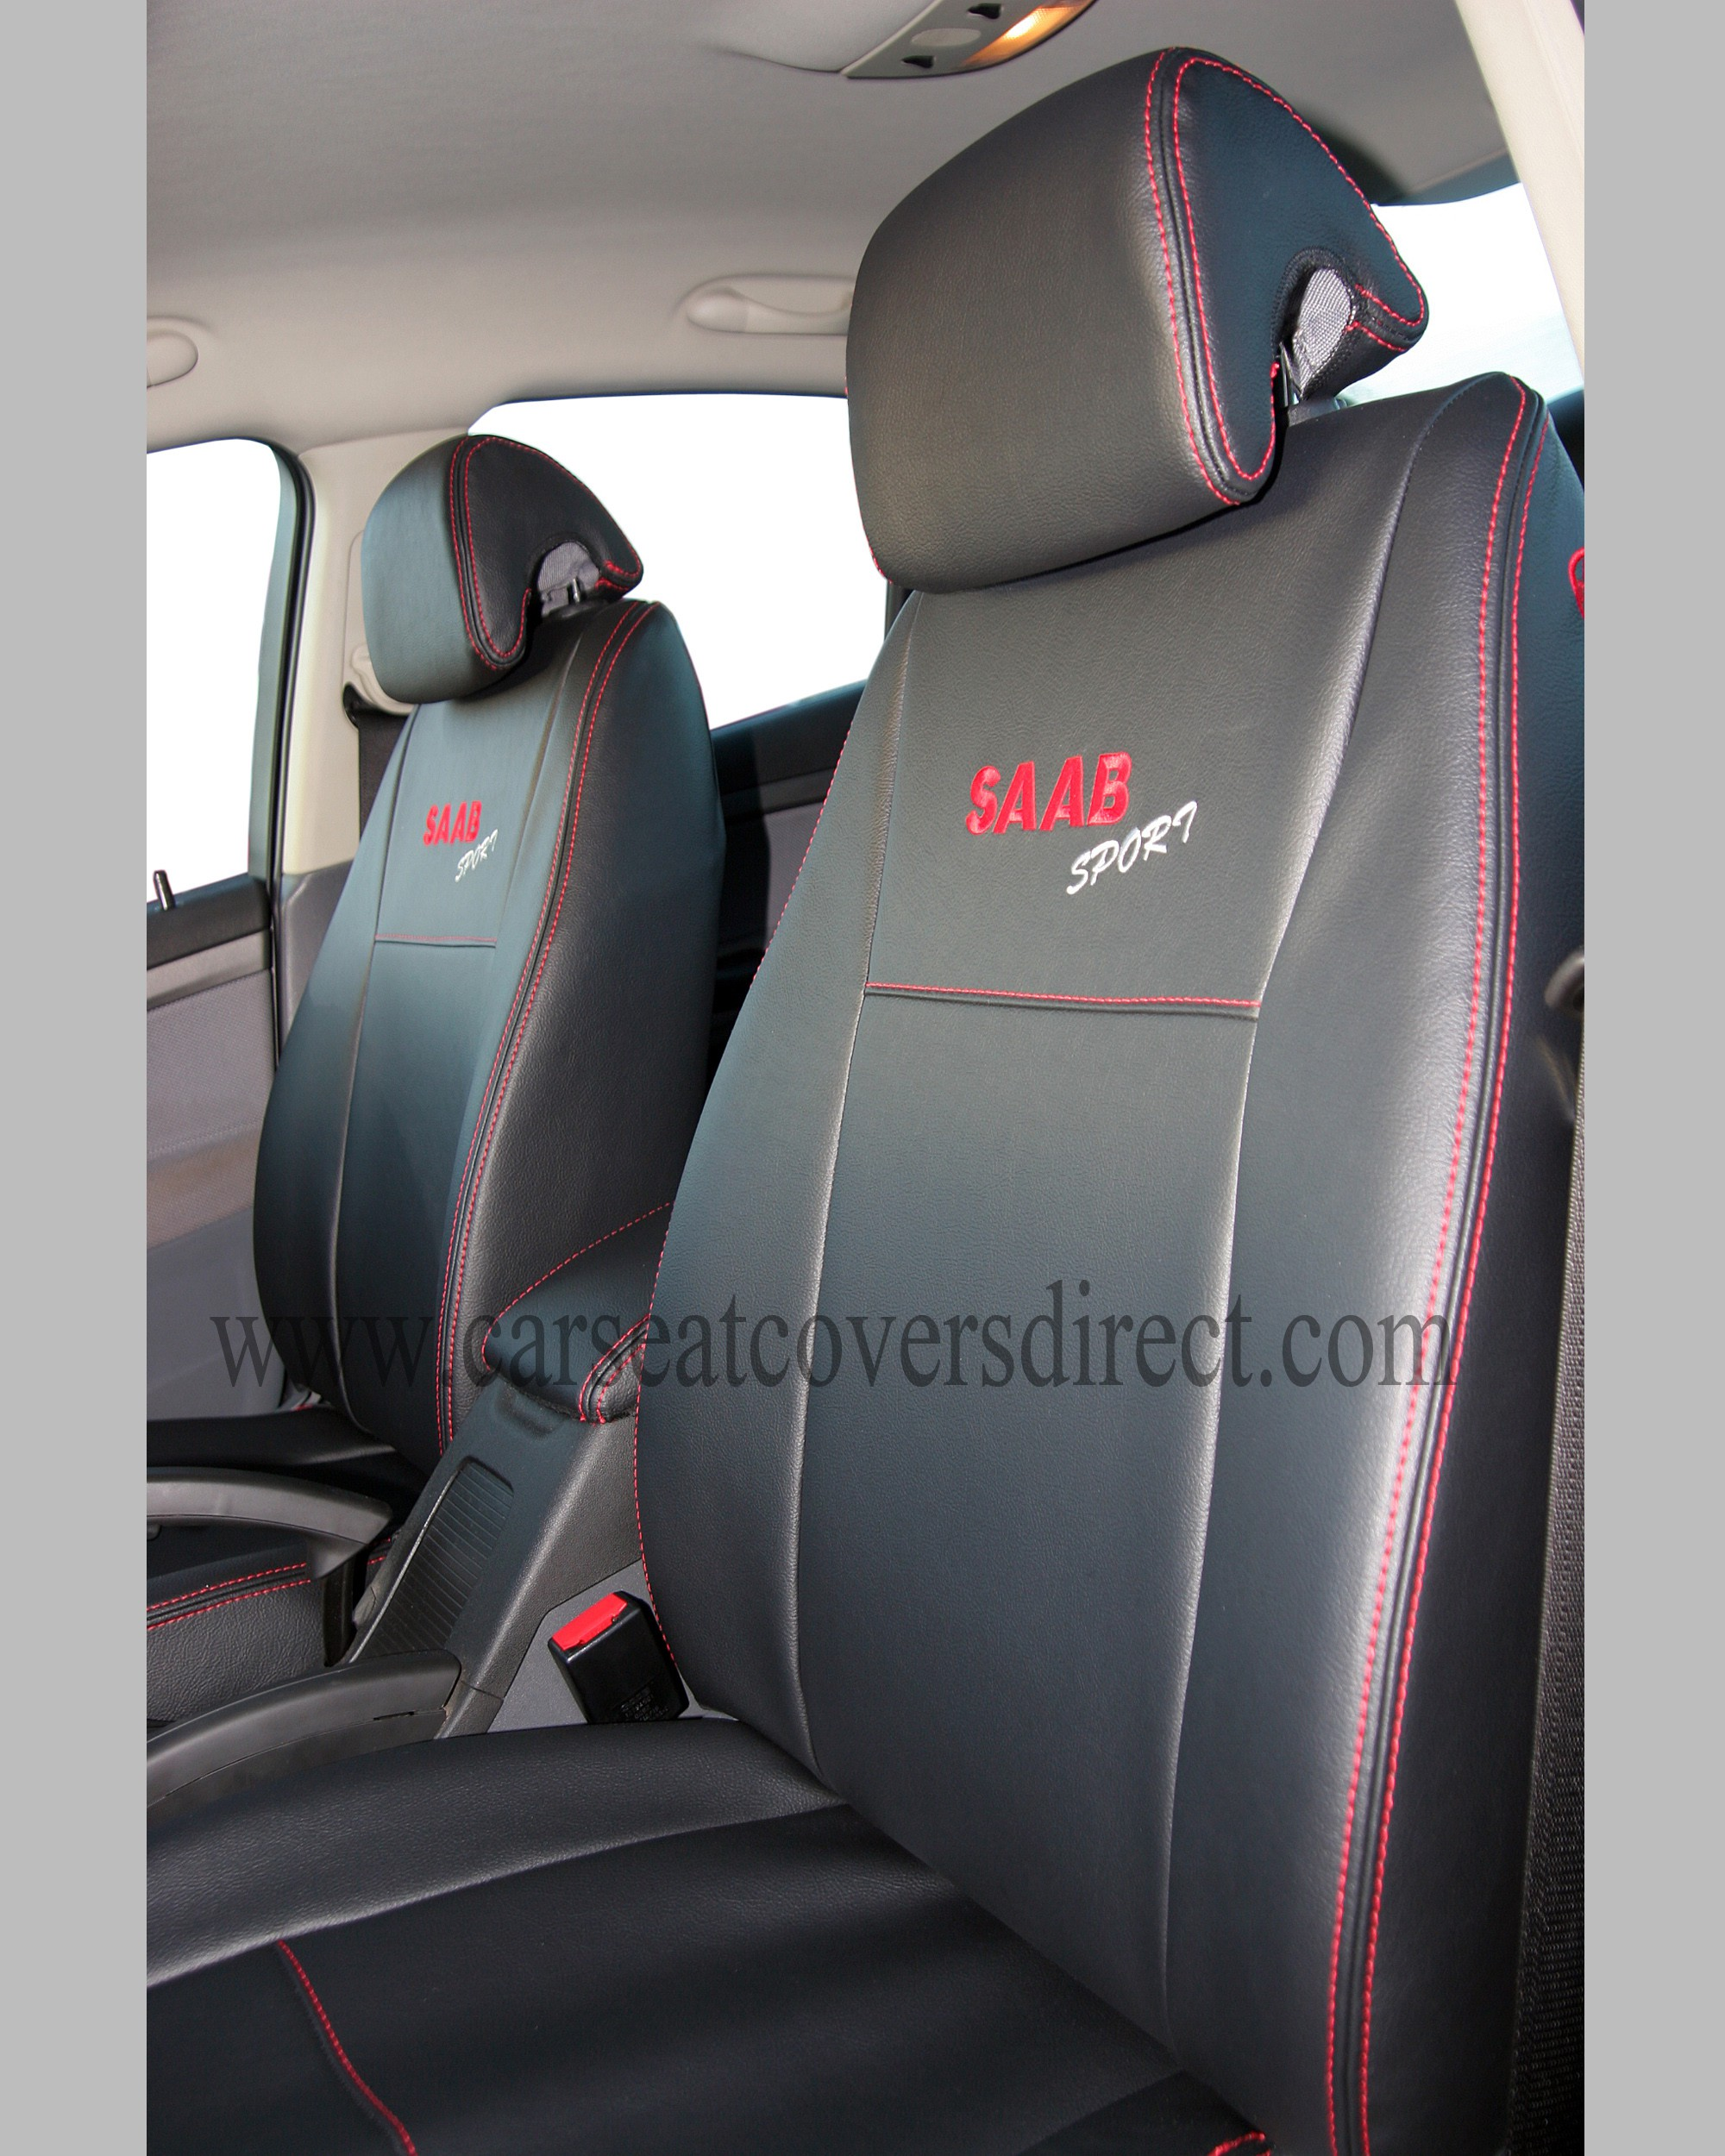 Saab Front Seat on Nissan Note Seat